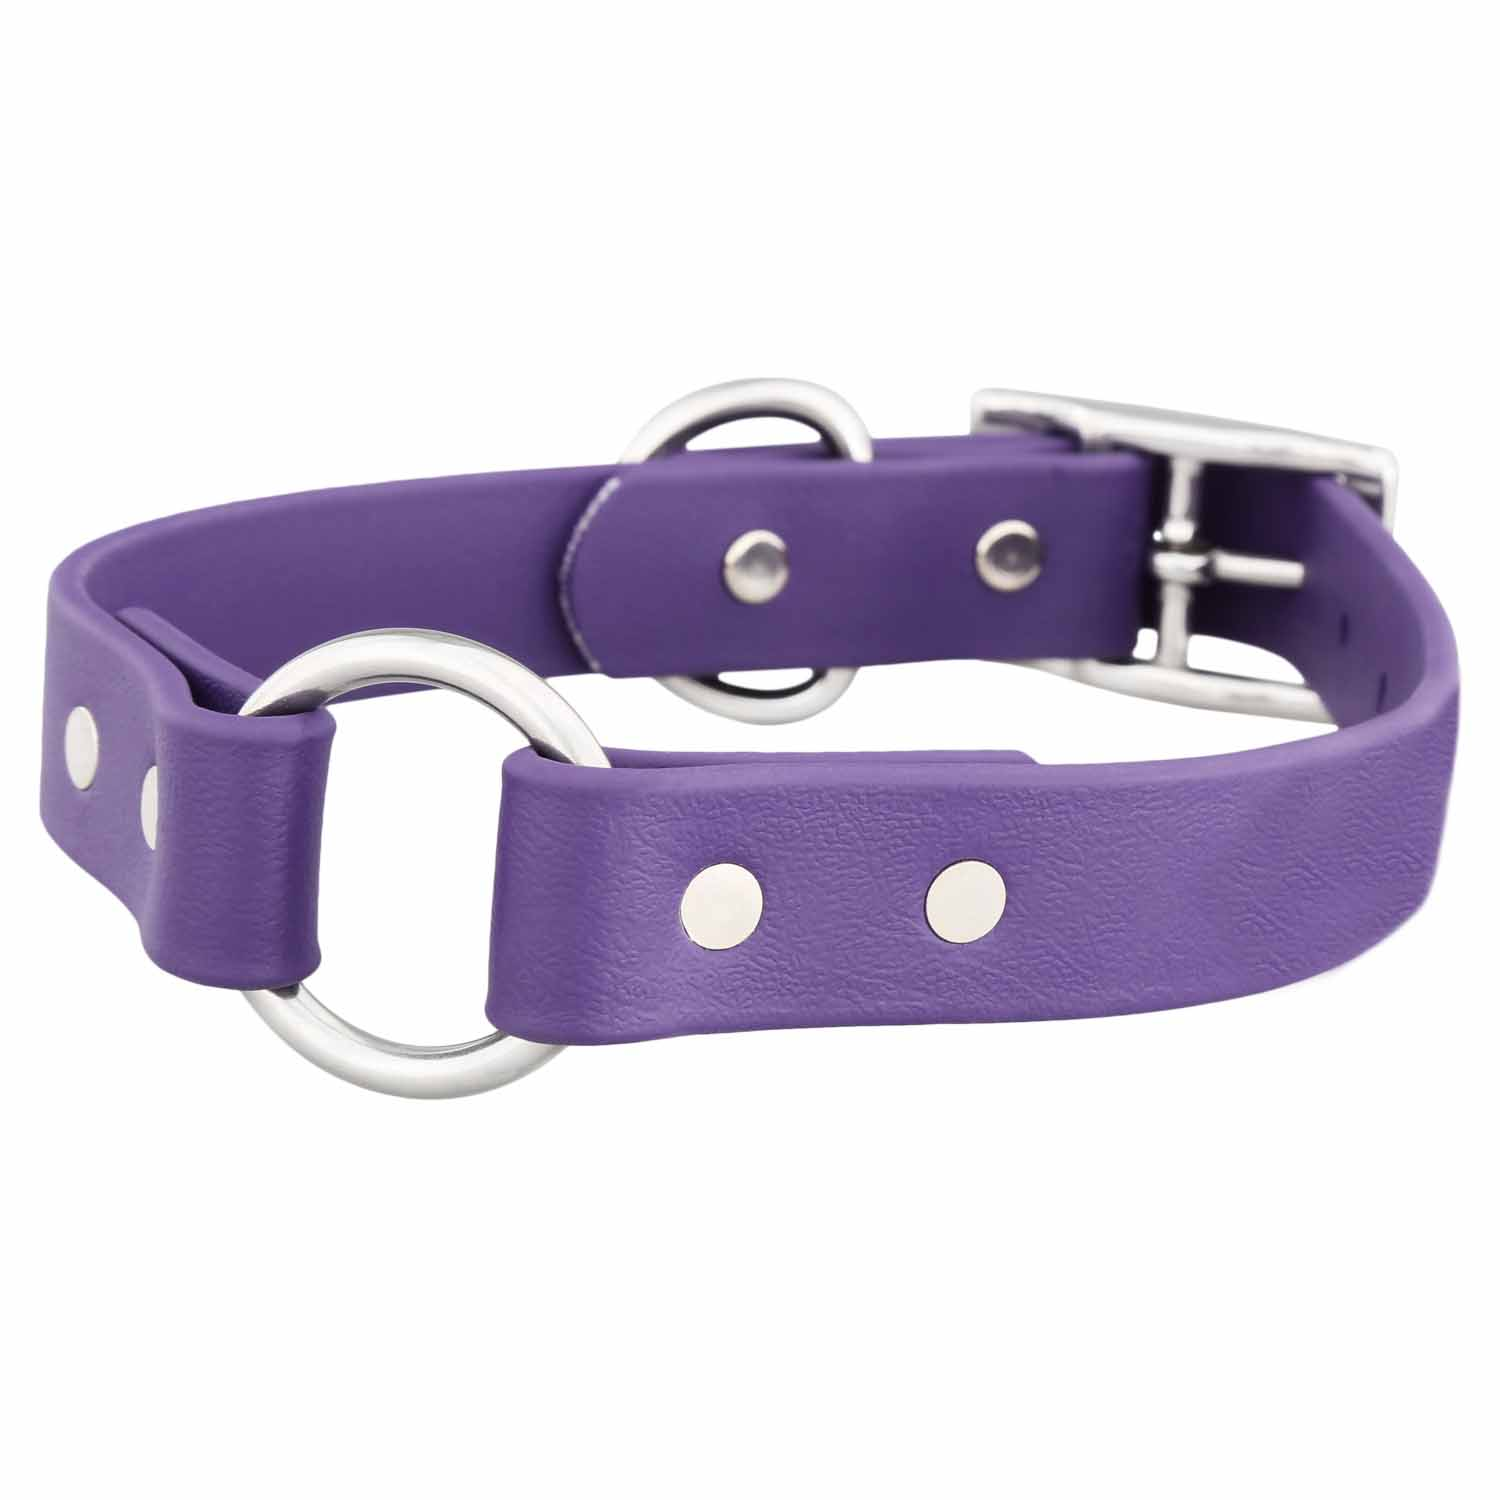 Waterproof Safety Dog Collar - Purple